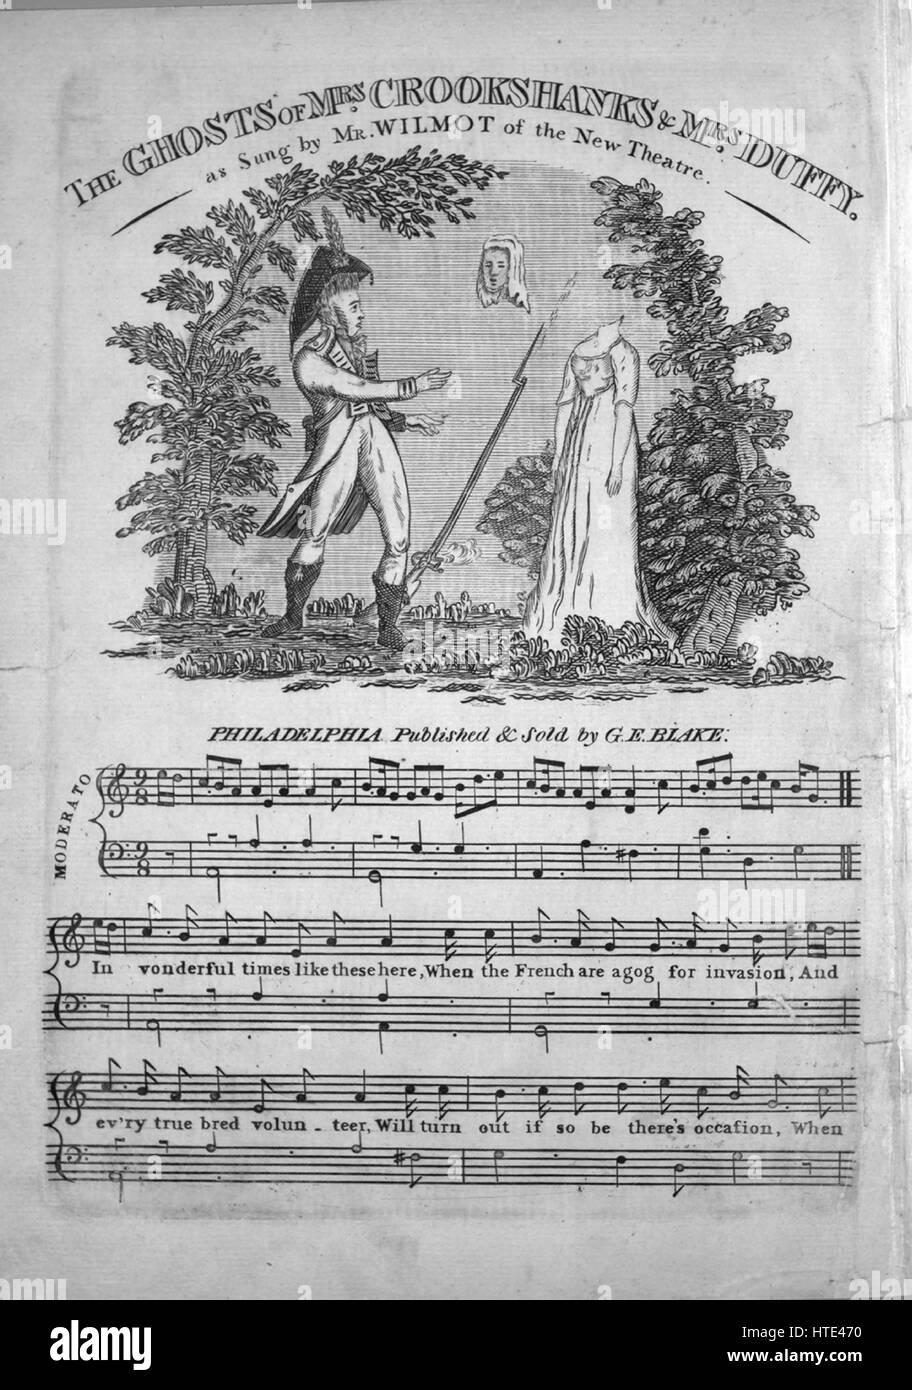 Sheet music cover image of the song 'The Ghosts of Mrs